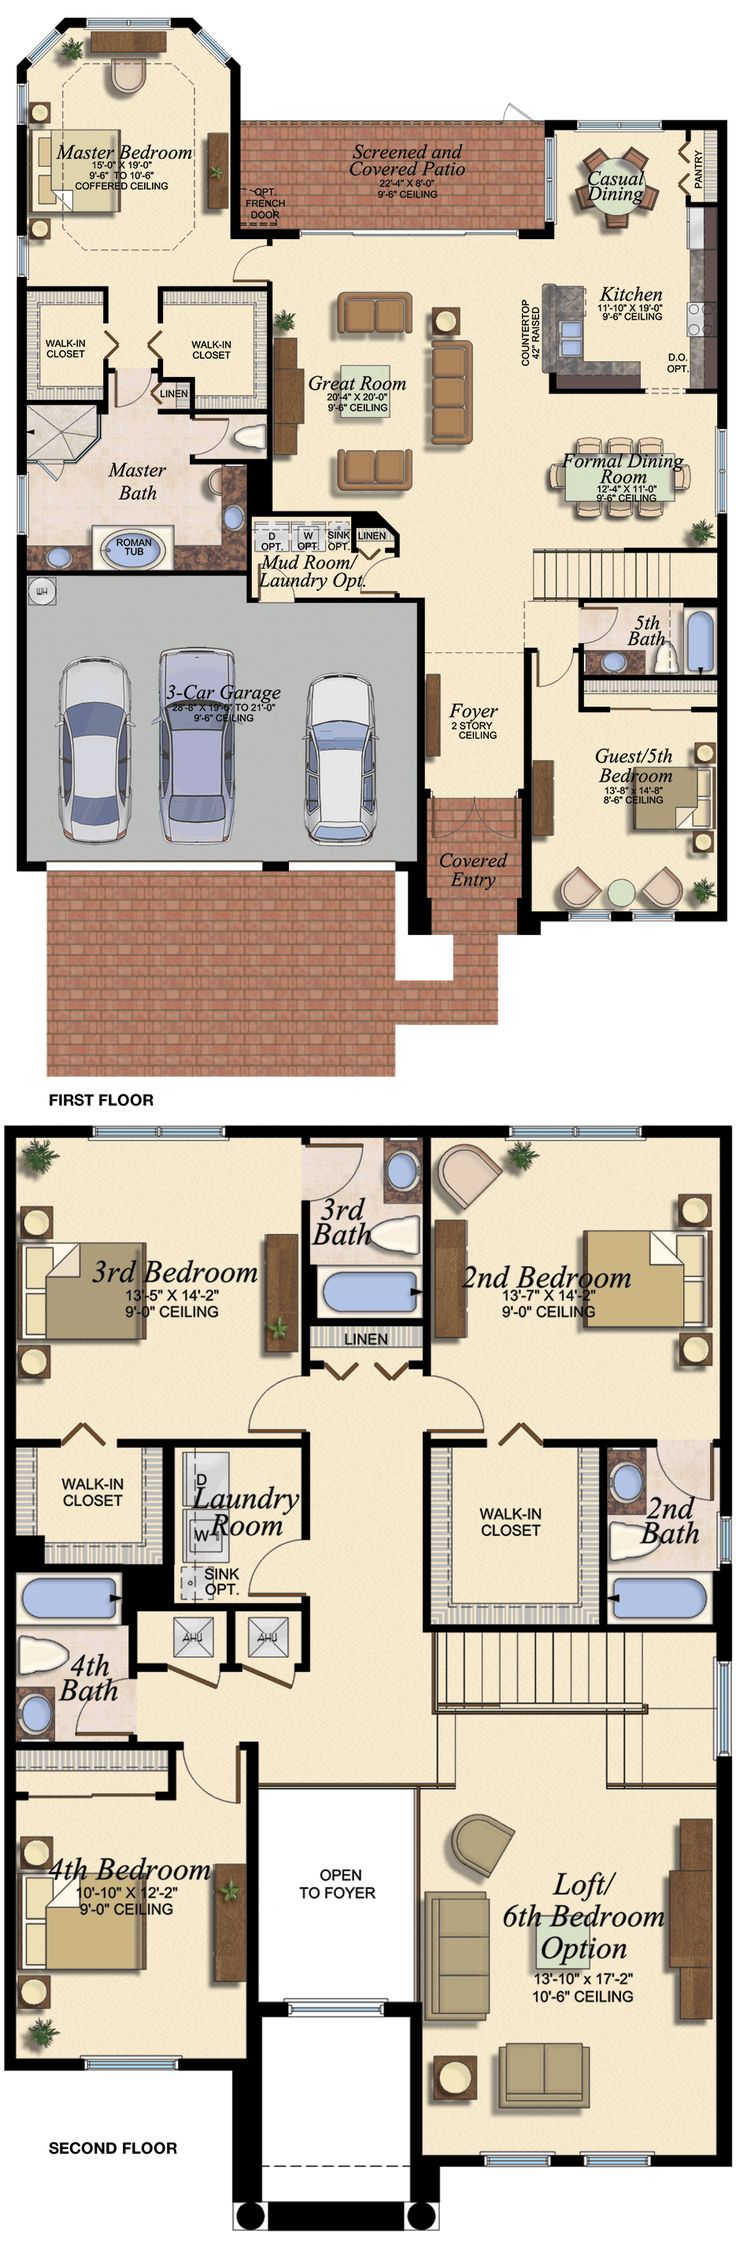 MANDALAY/676 Floor Plan (Large View)